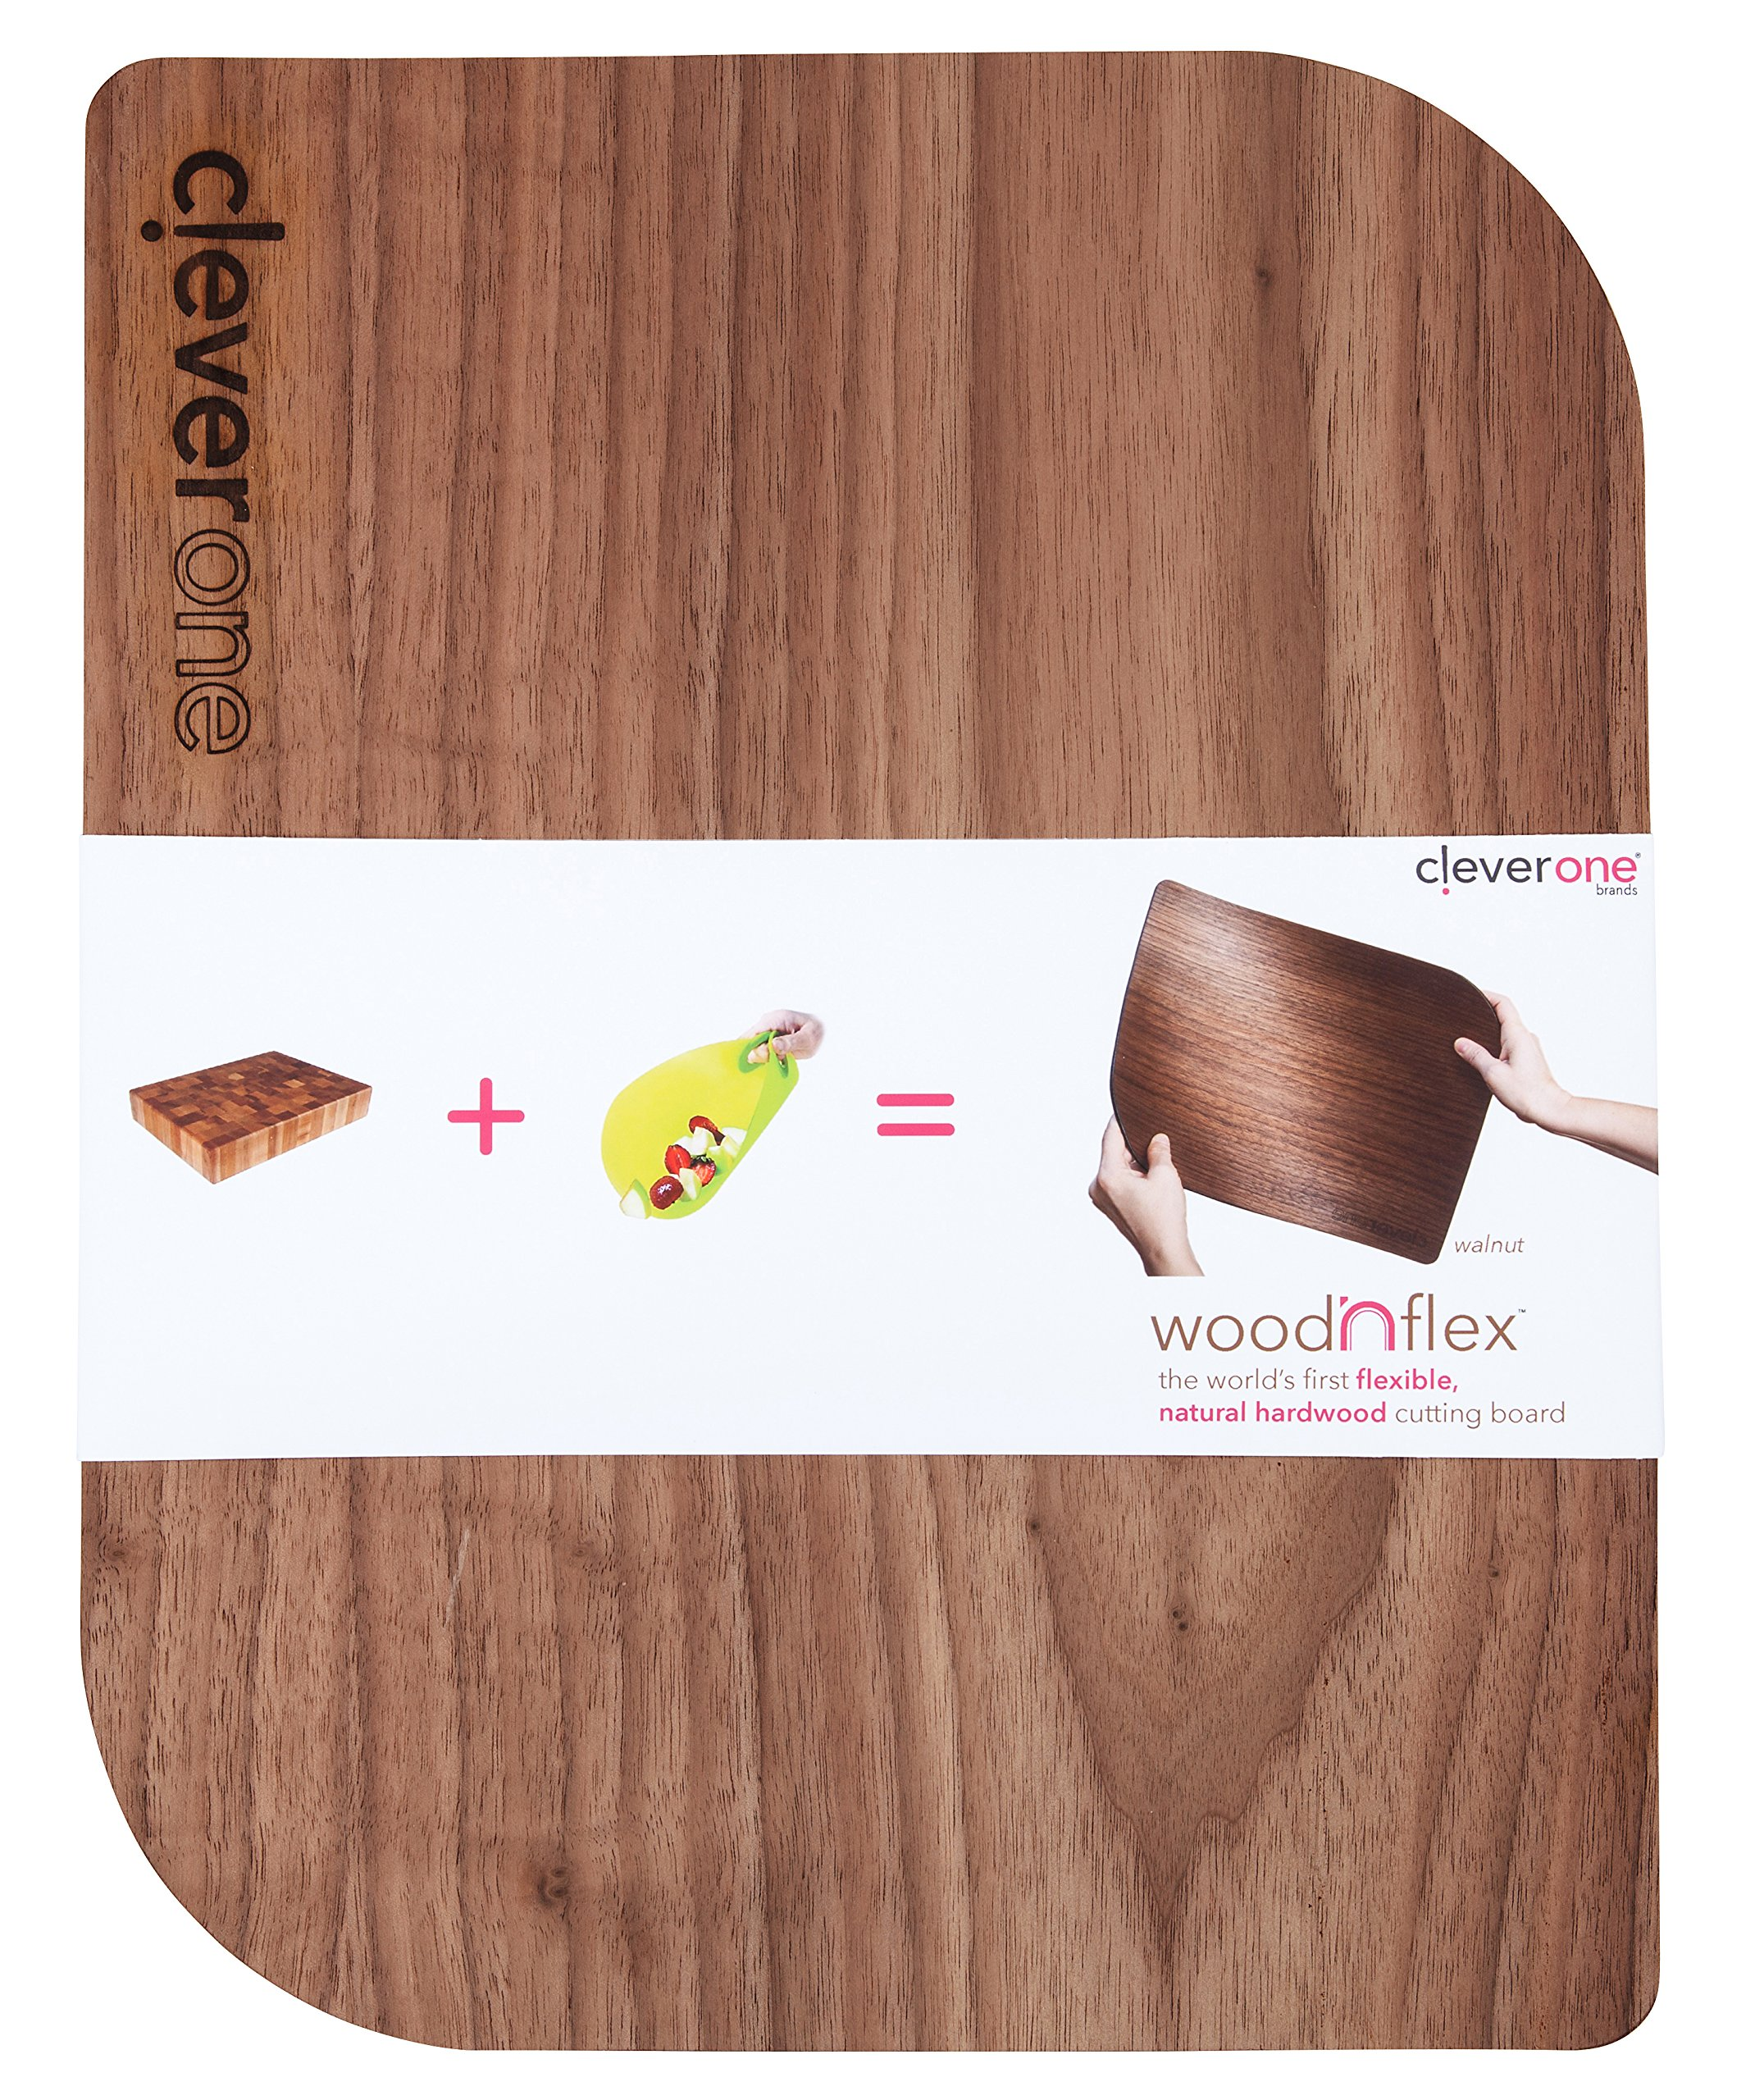 woodNflex Flexible Natural Wood Cutting Board for Kitchen, USA Handmade of Oak and Walnut, Not Dishwasher Safe, Non-Slip Silicone Back (Walnut, 14x11)